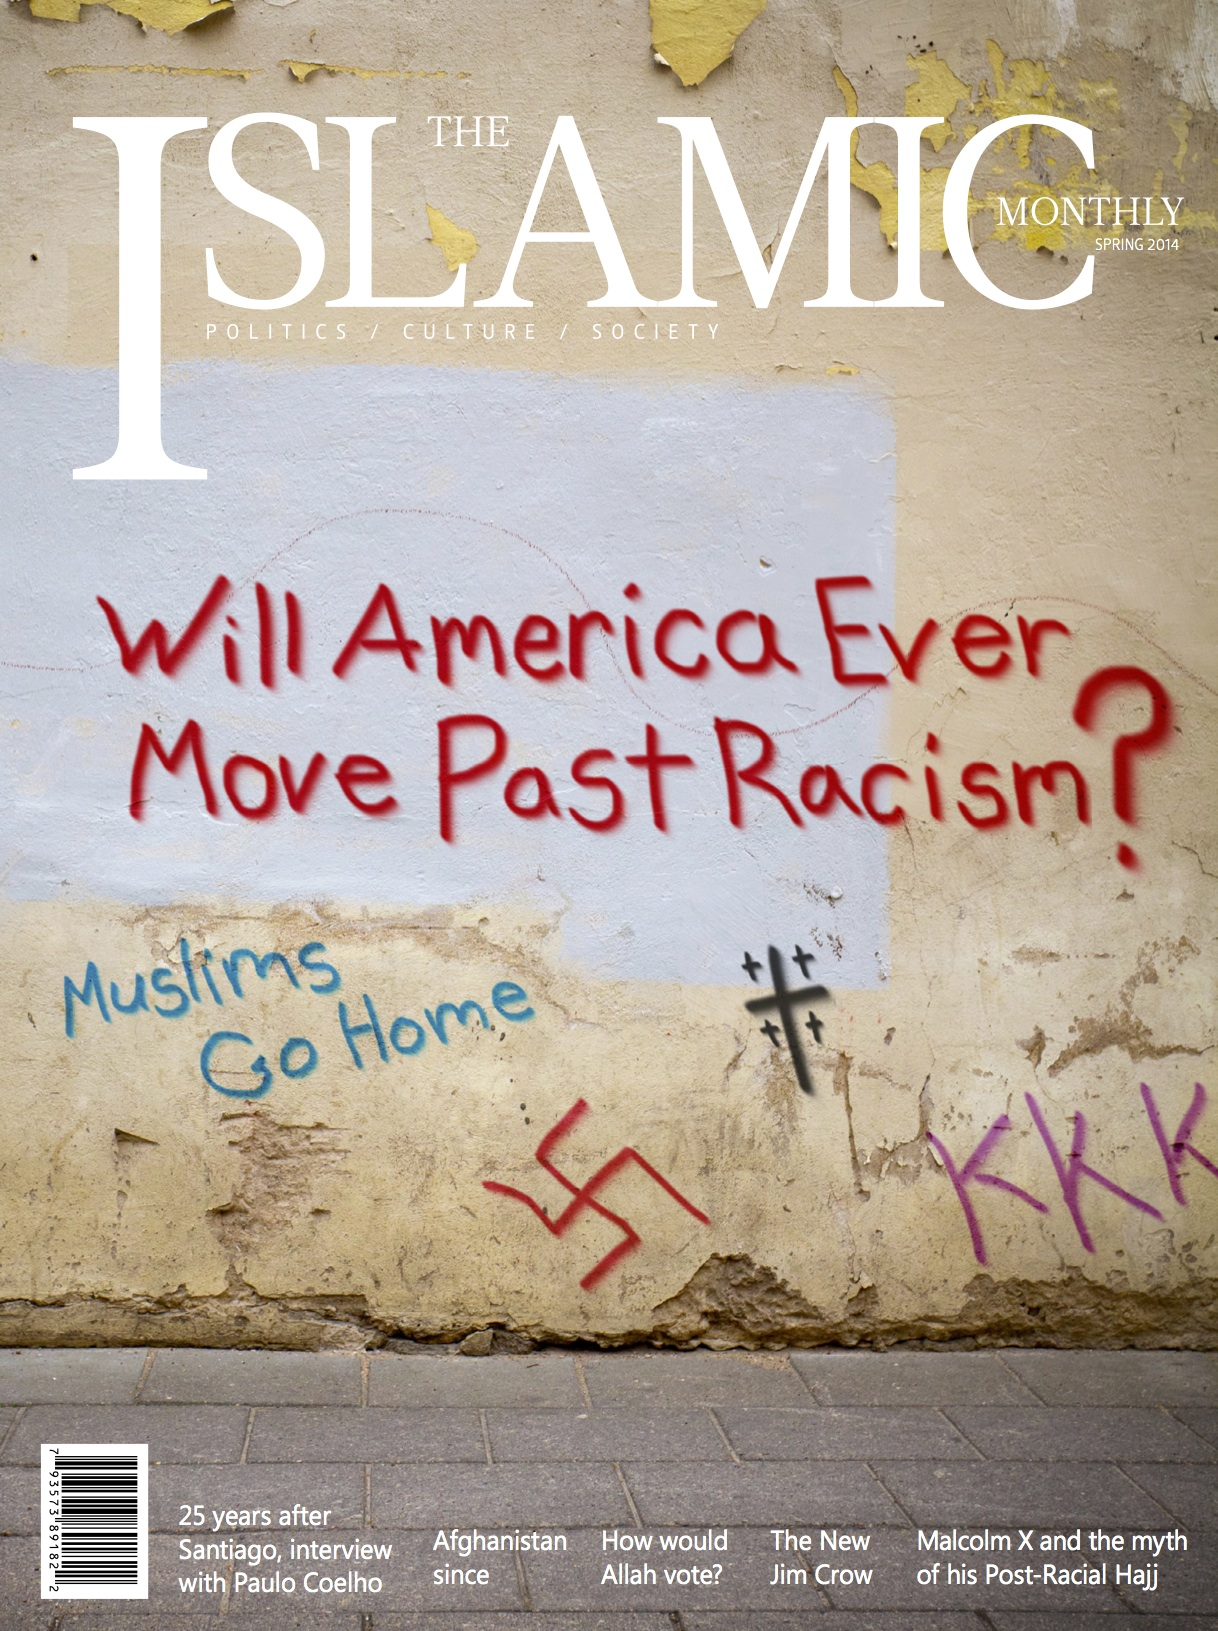 Will America Ever Move Past Racism?